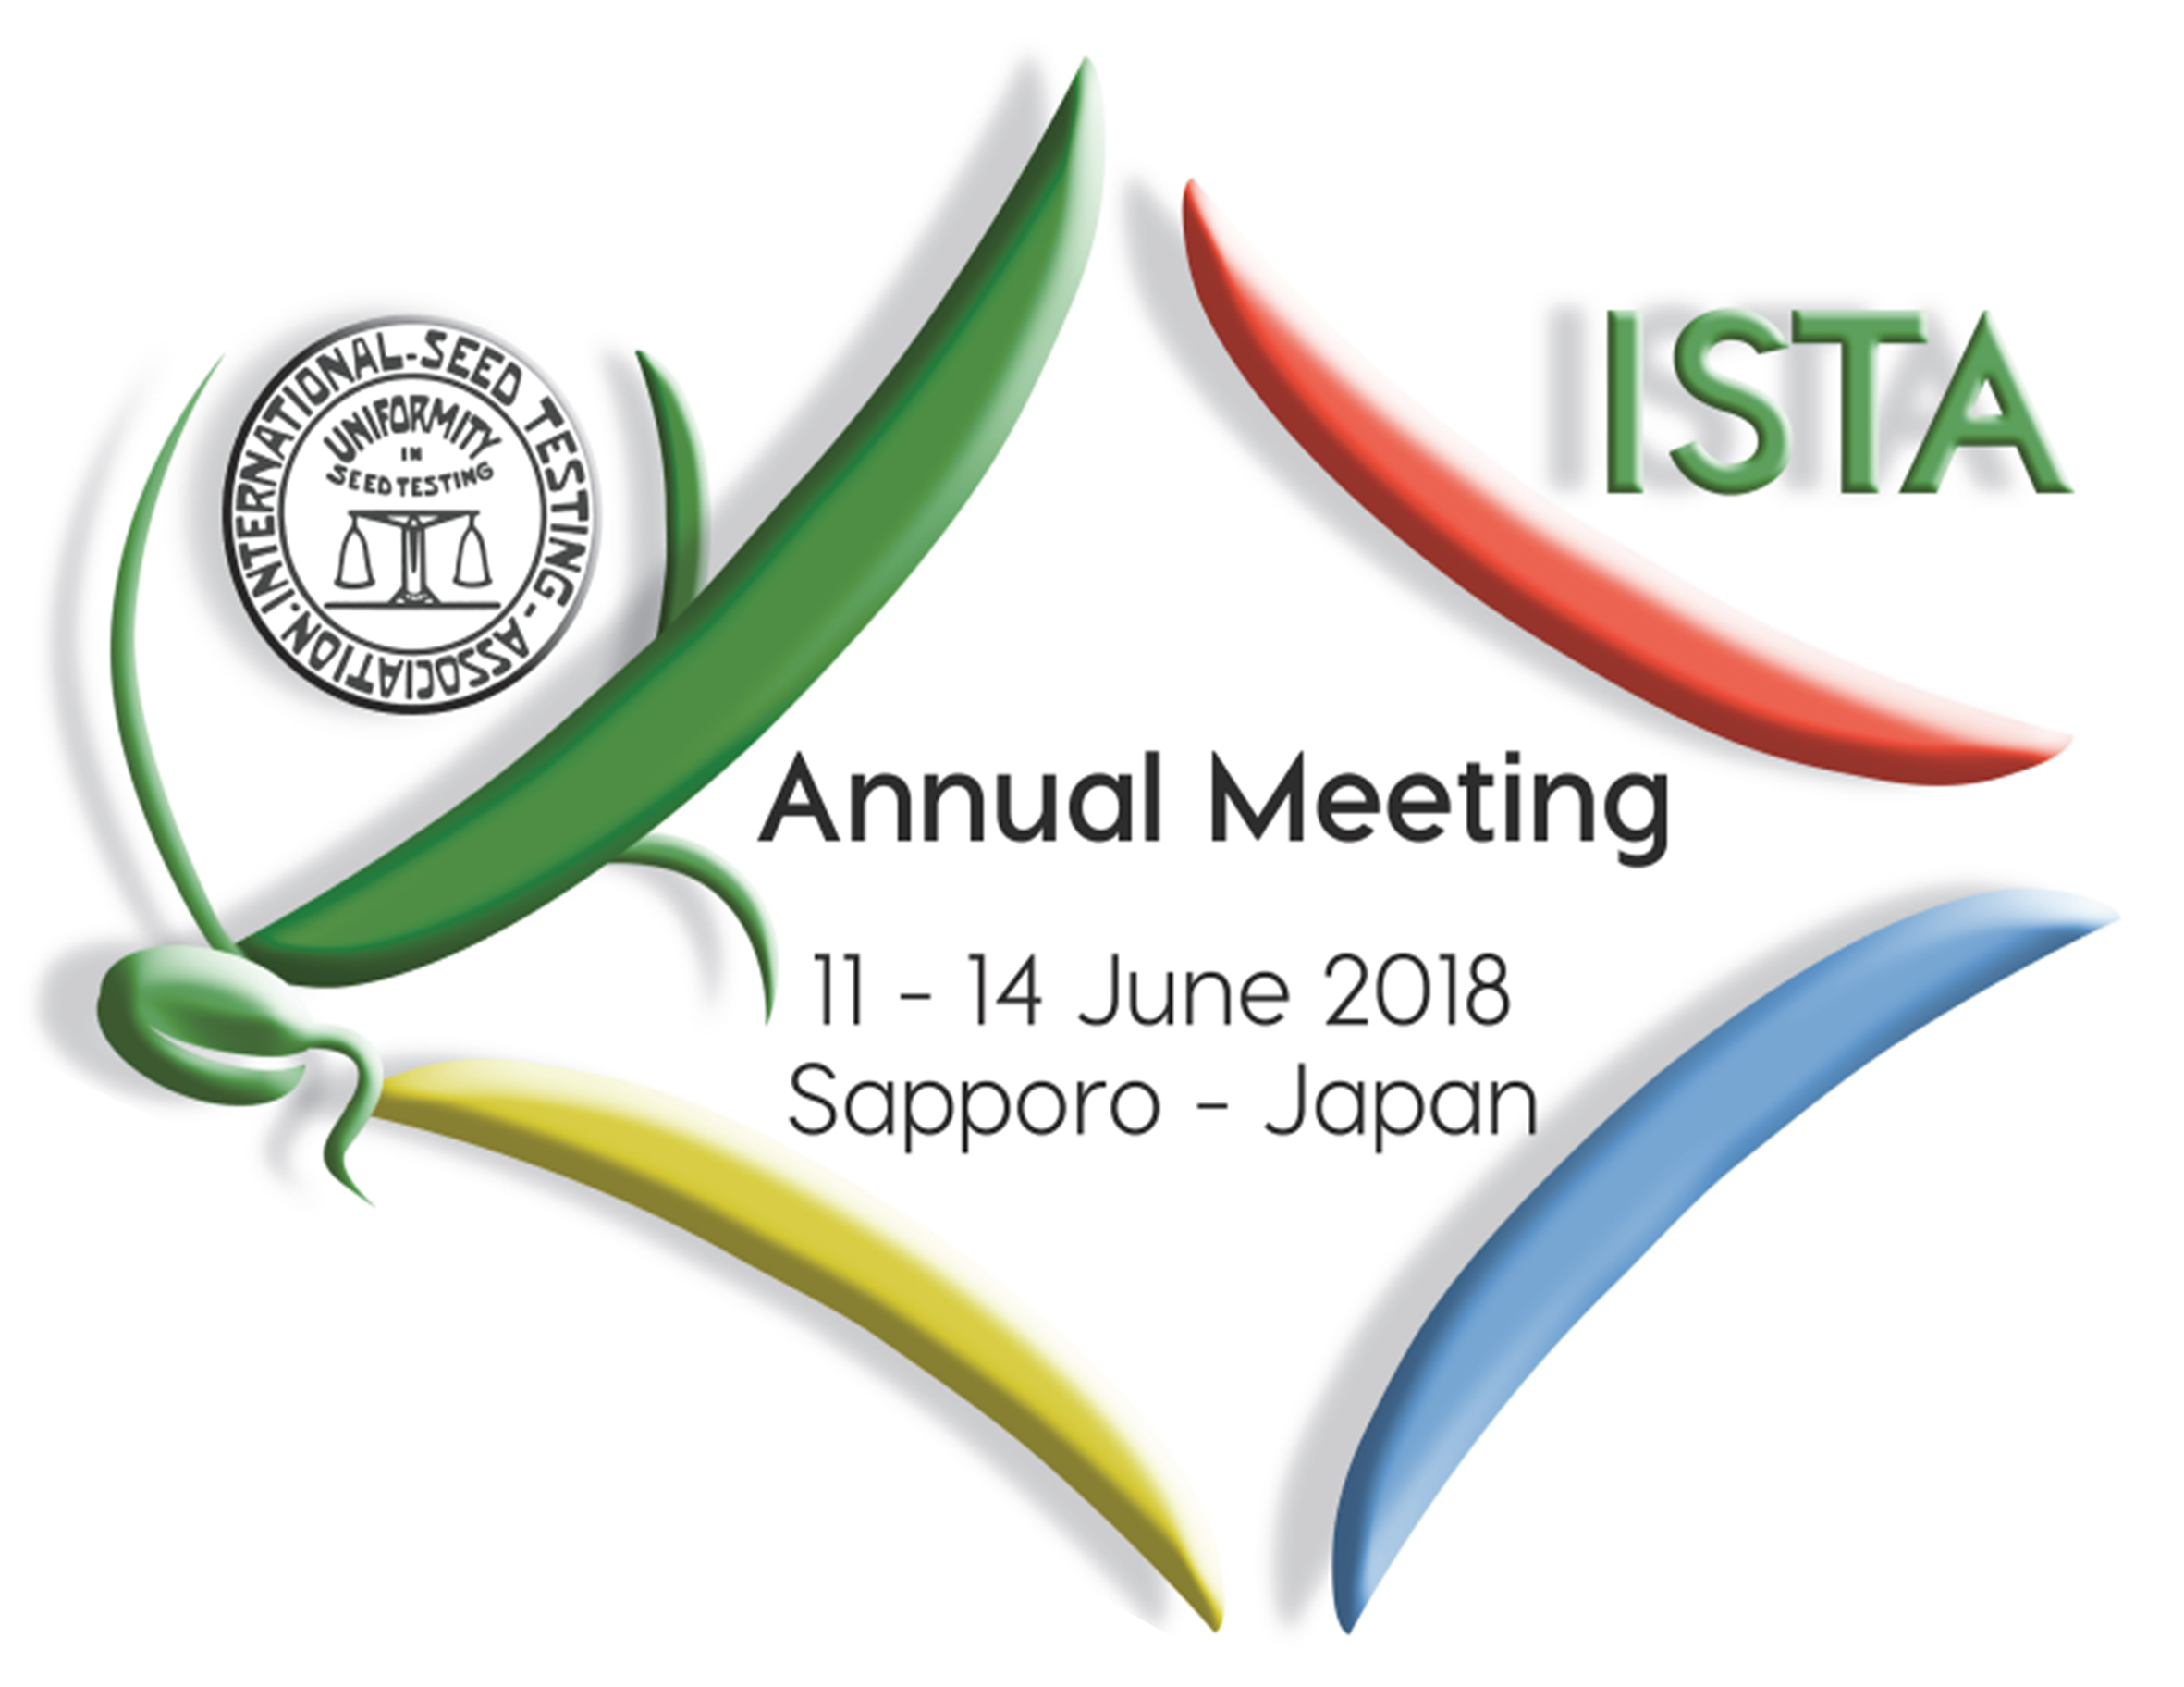 Geves At The Ista Annual Ordinary General Meeting In Sapporo Japan